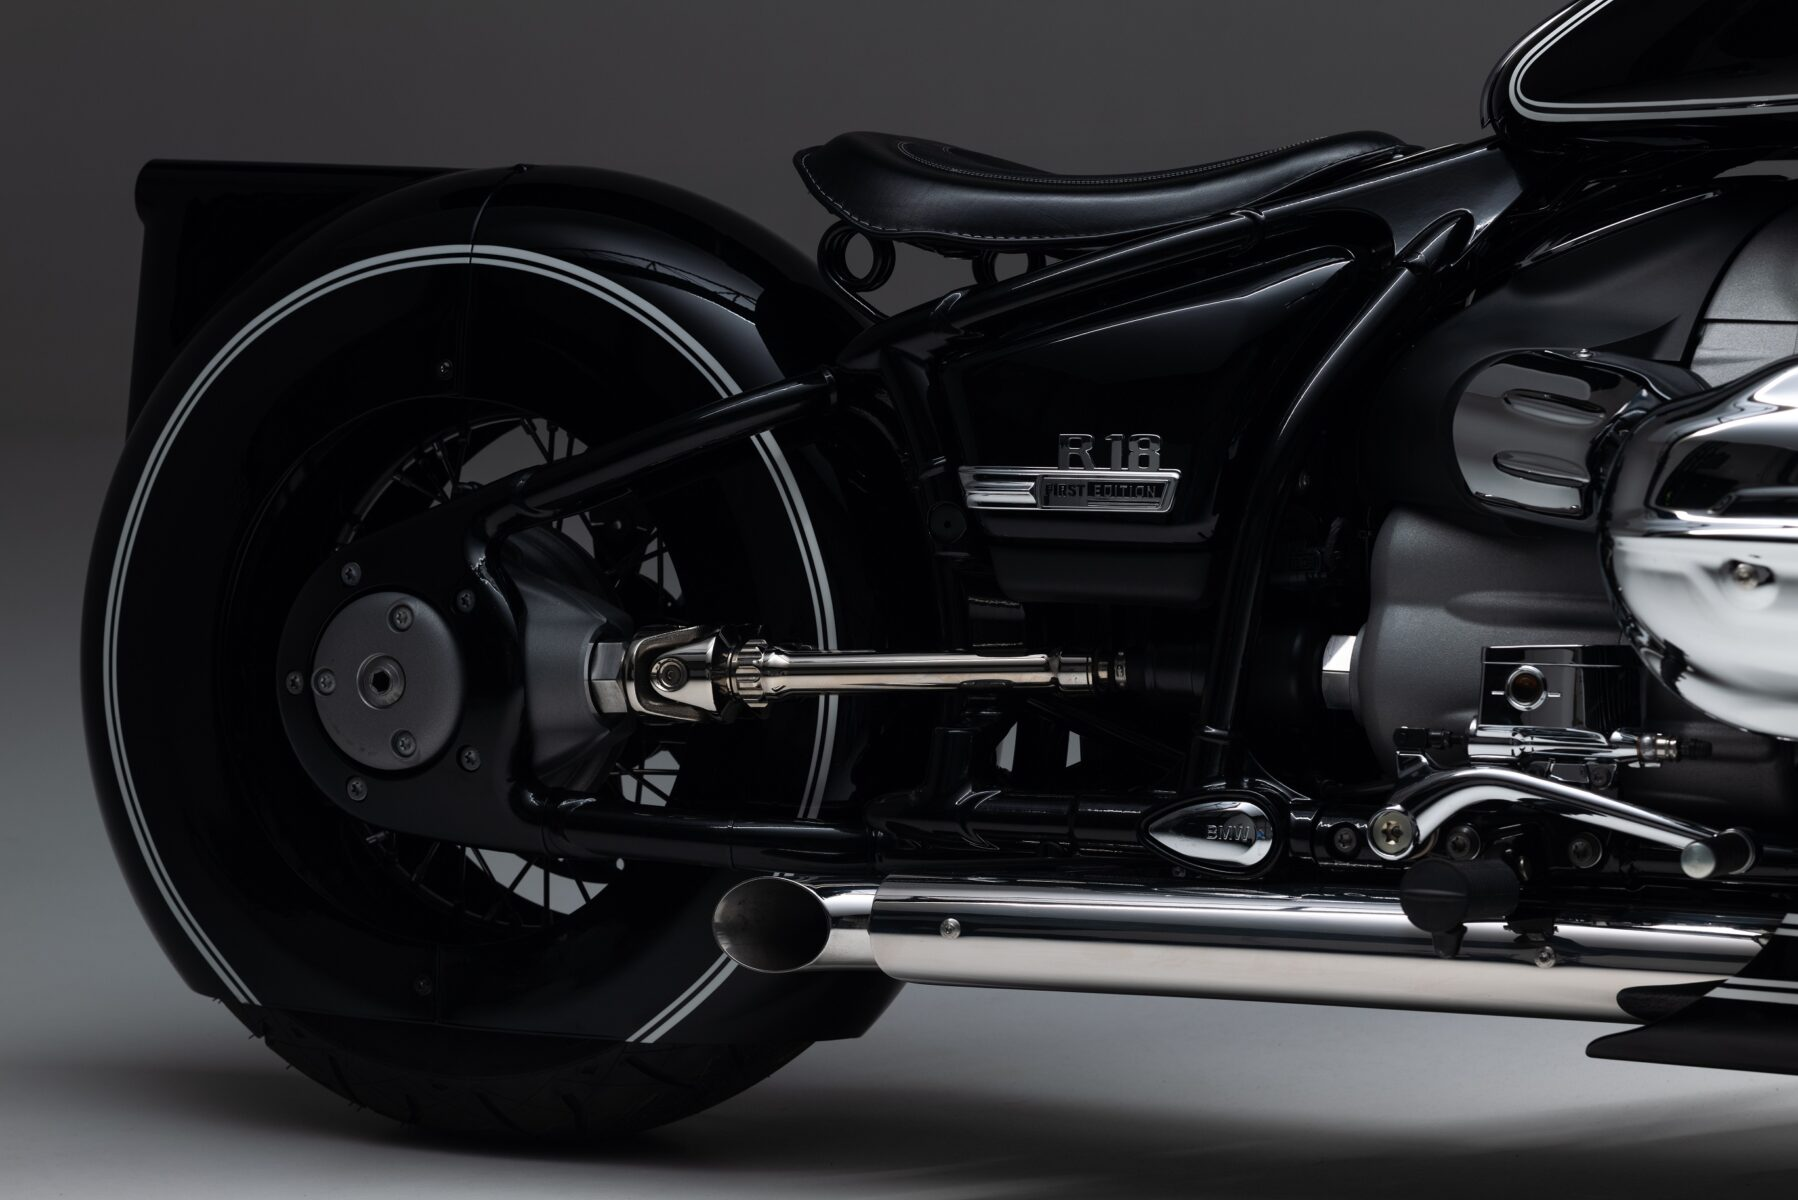 bmw r18 customizada 24 spirit of passion